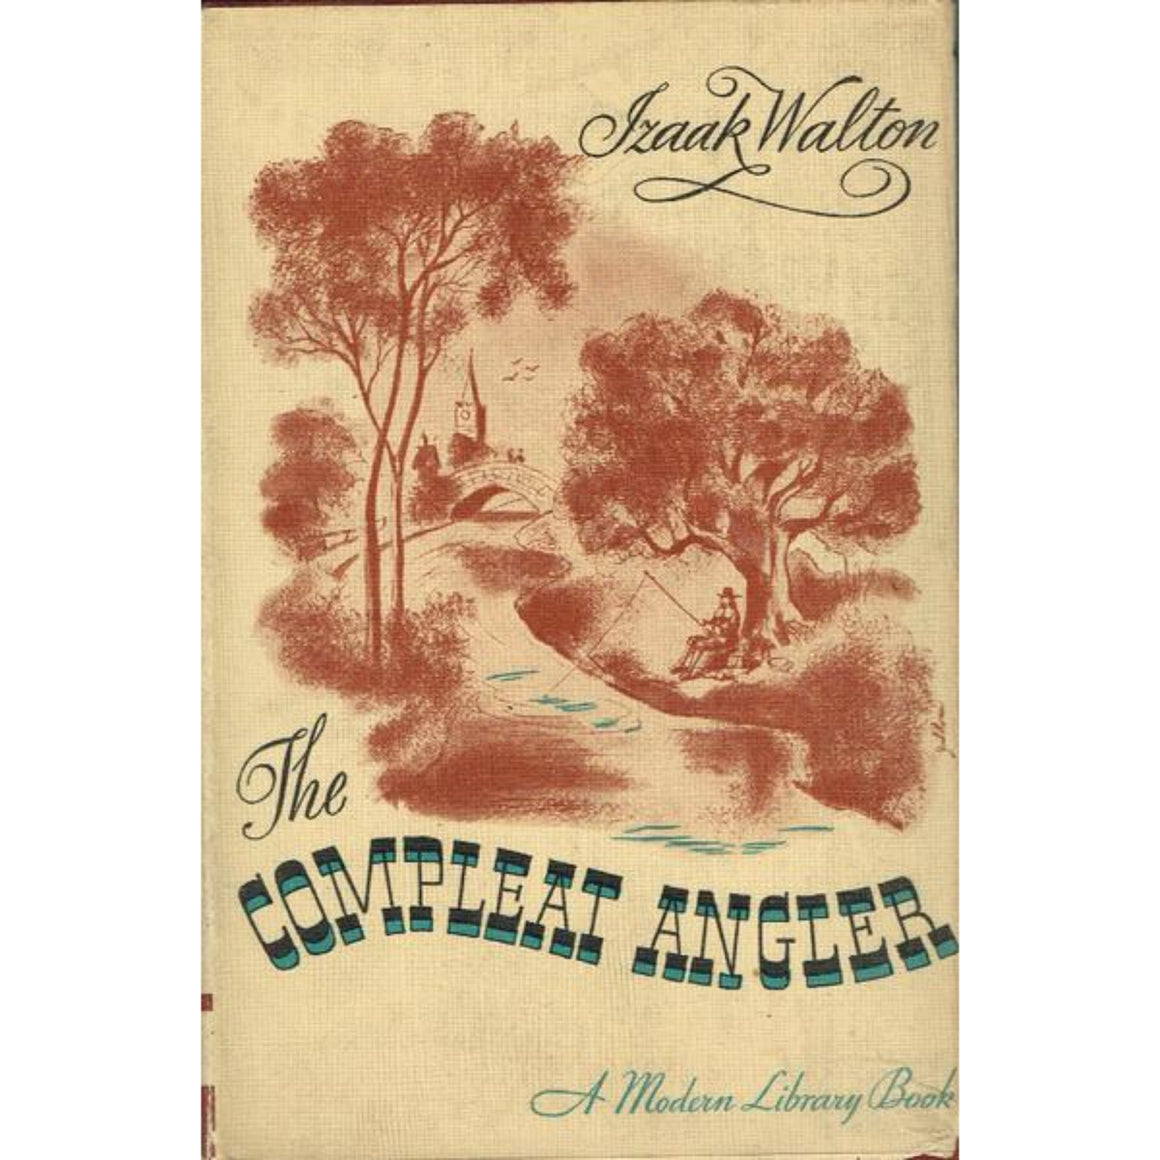 'The Compleat Angler' by Isaak Walton